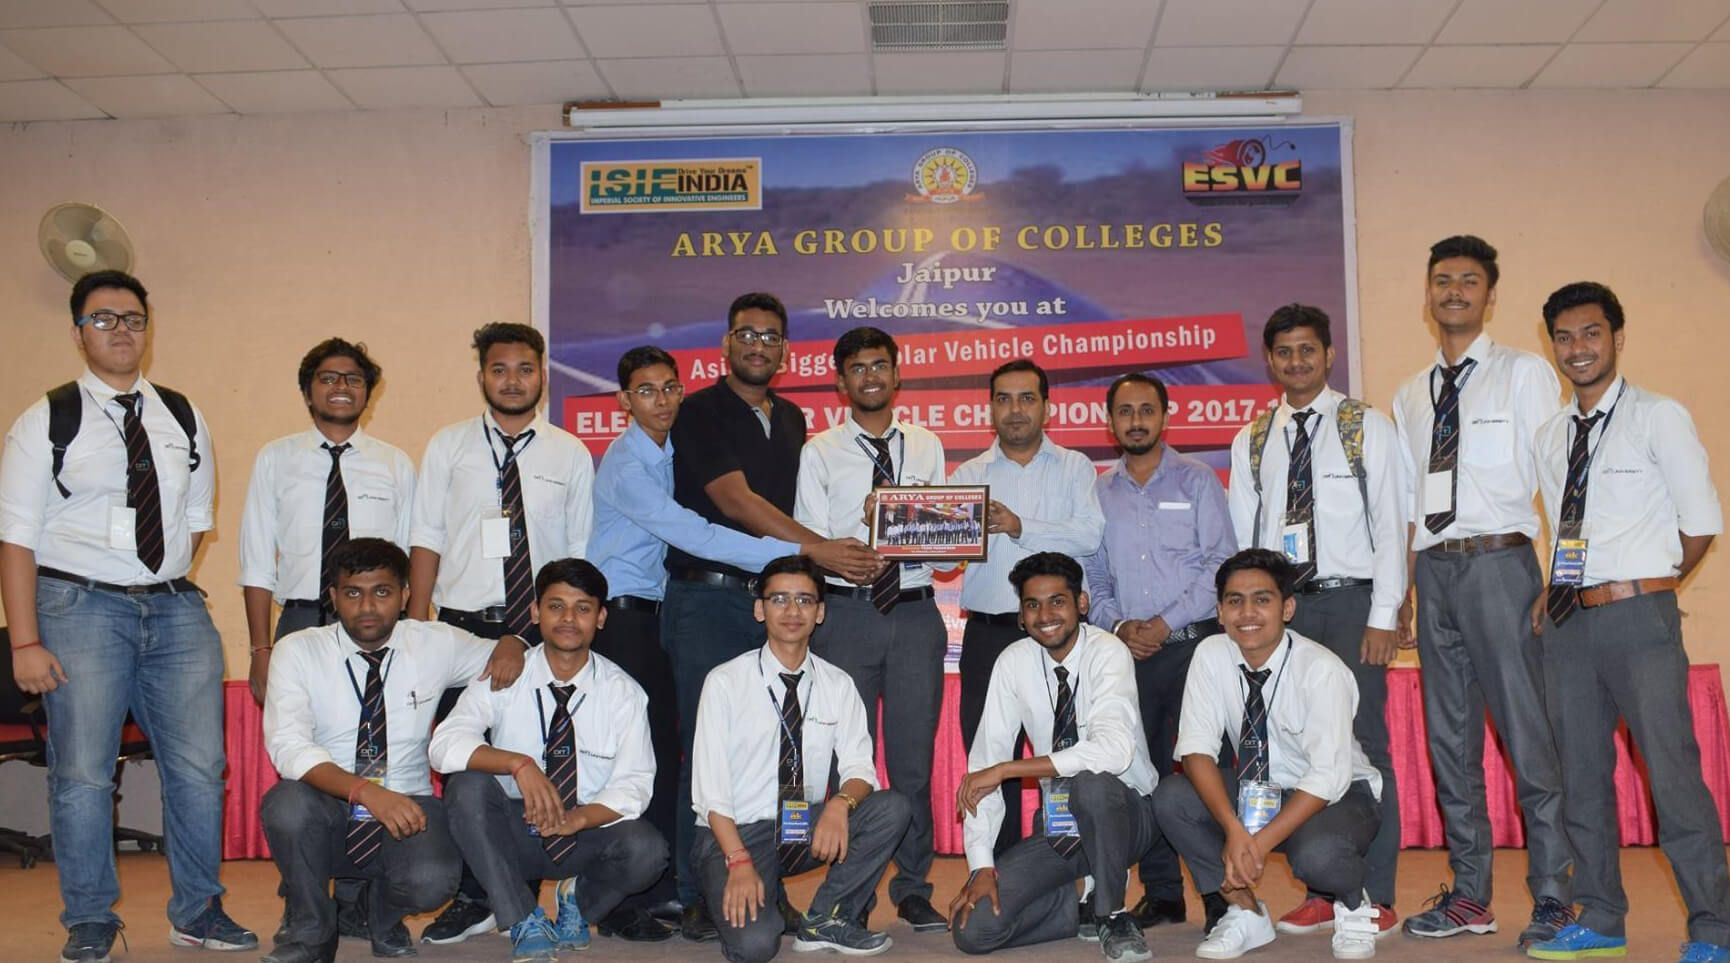 'Team Parakram' for achieved ALL INDIA RANK 1st in Pre-virtual round of Electric Solar Vehicle Championship (ESVC-2018) held at Rajasthan